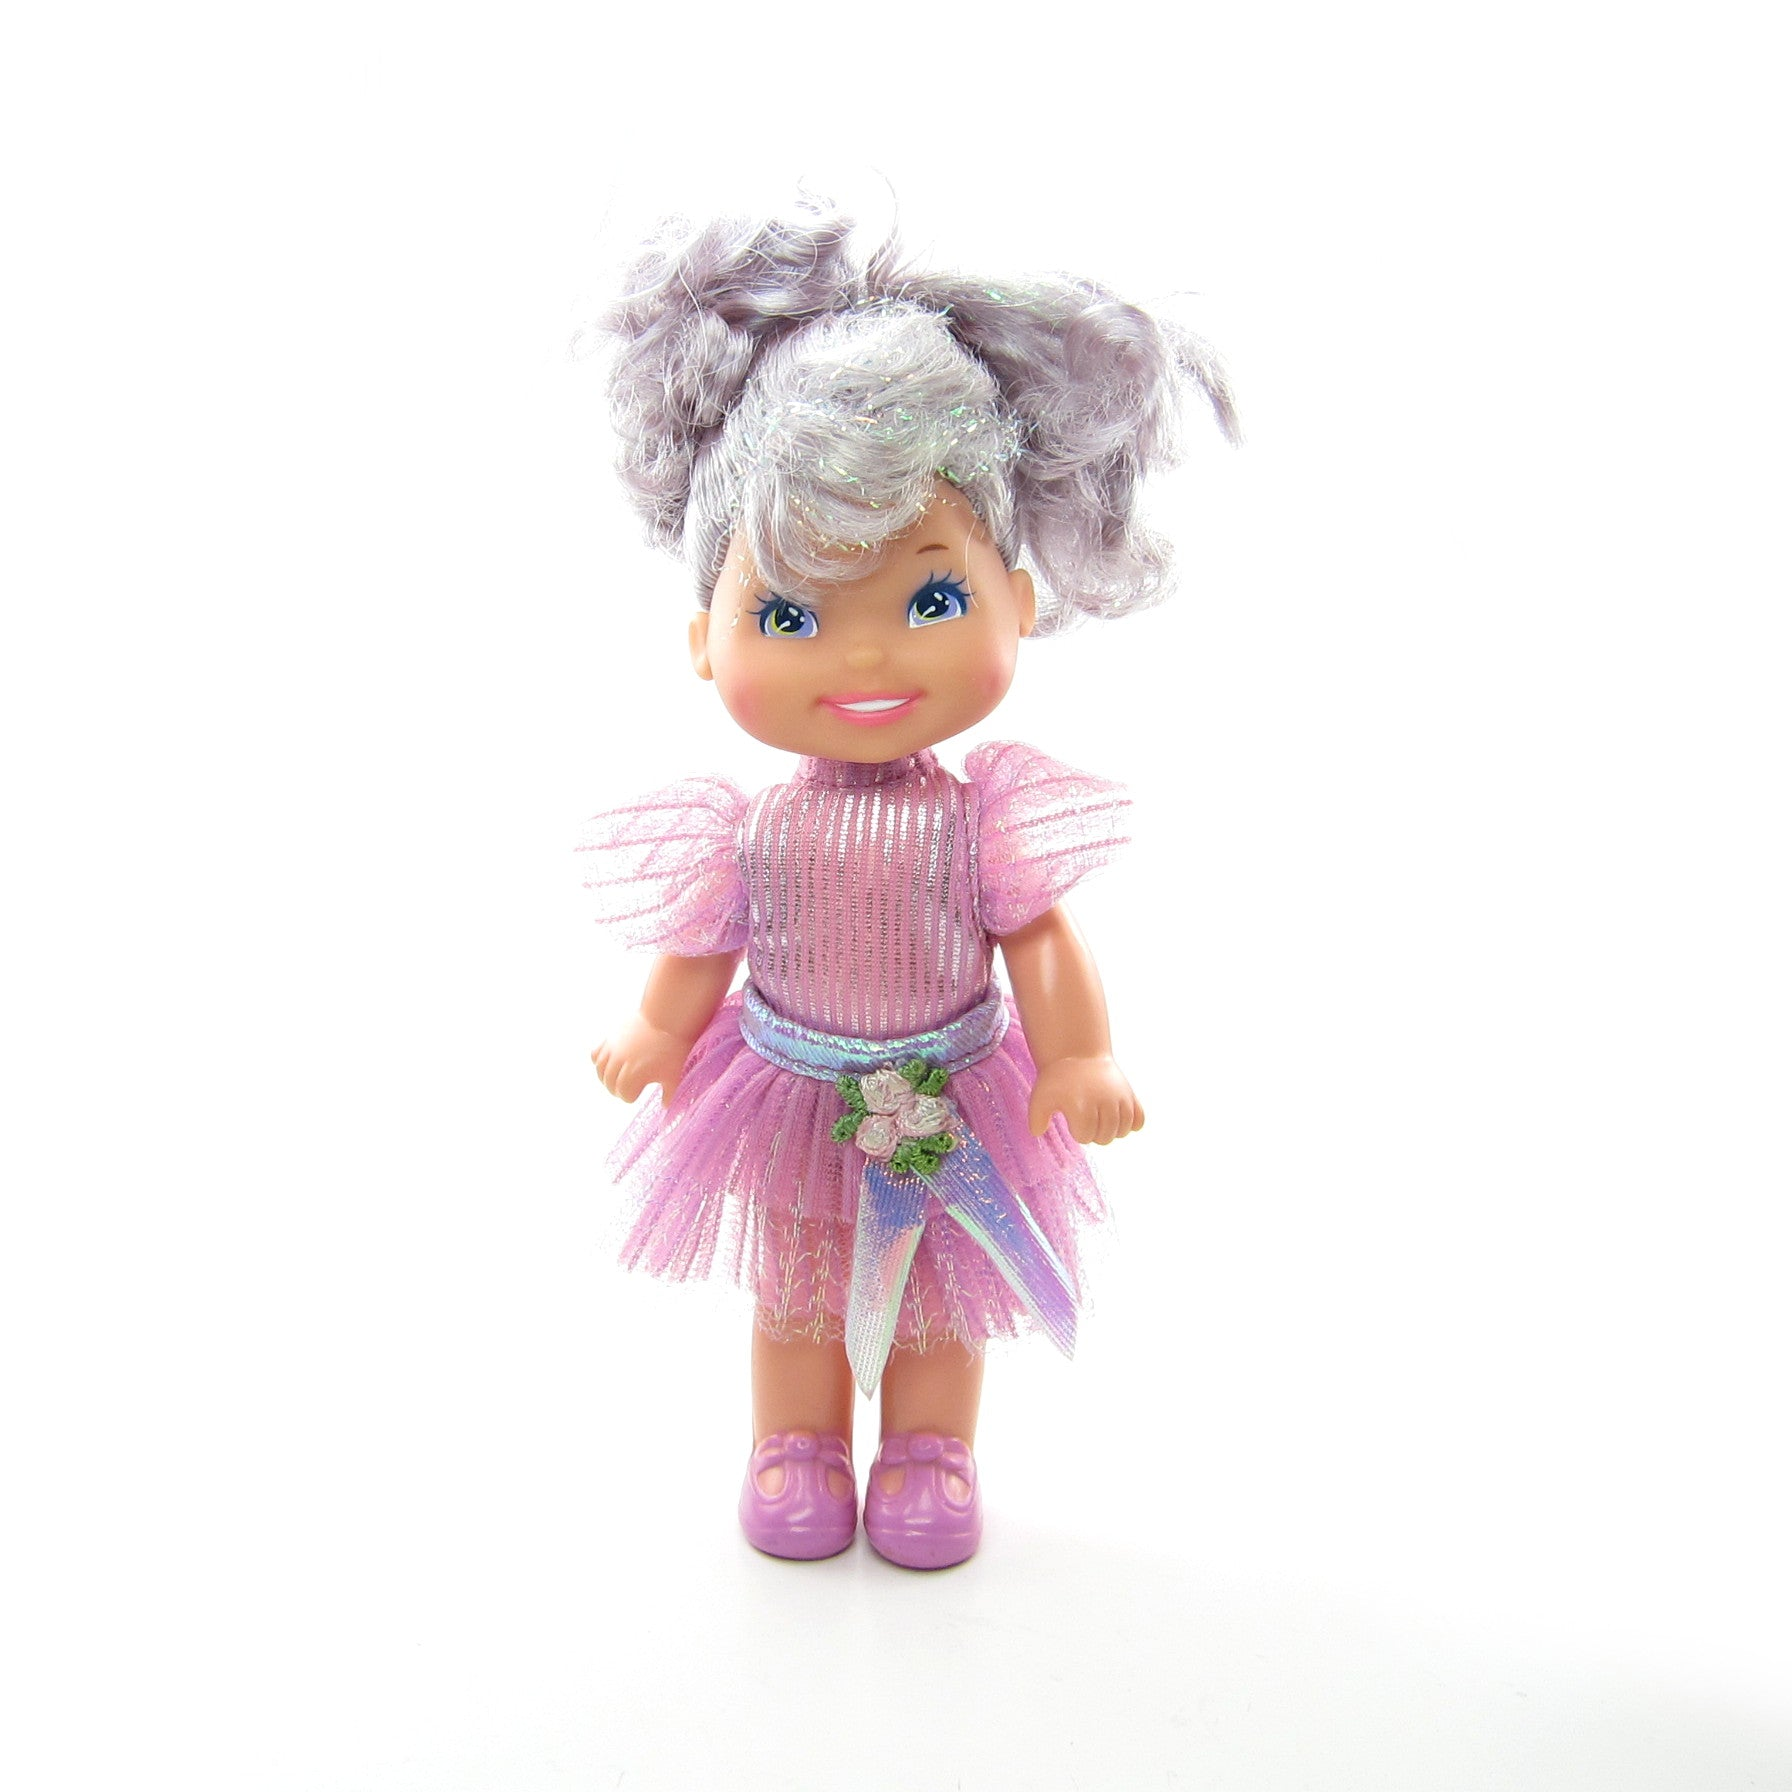 Grape Ice Cherry Merry Muffin doll with purple dress